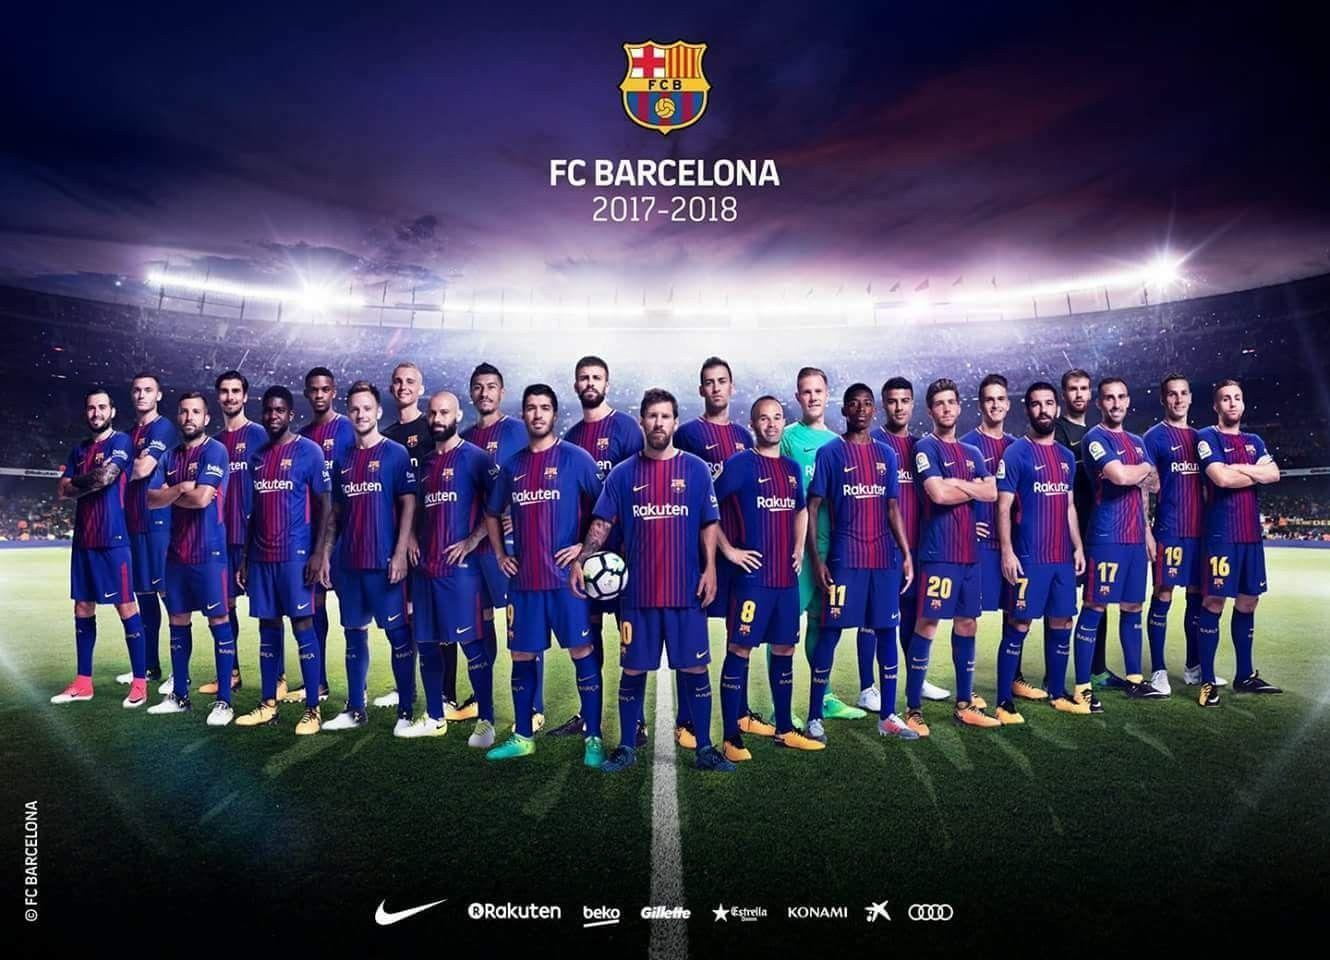 15+ Fc Barcelona Wallpaper 4K 2020